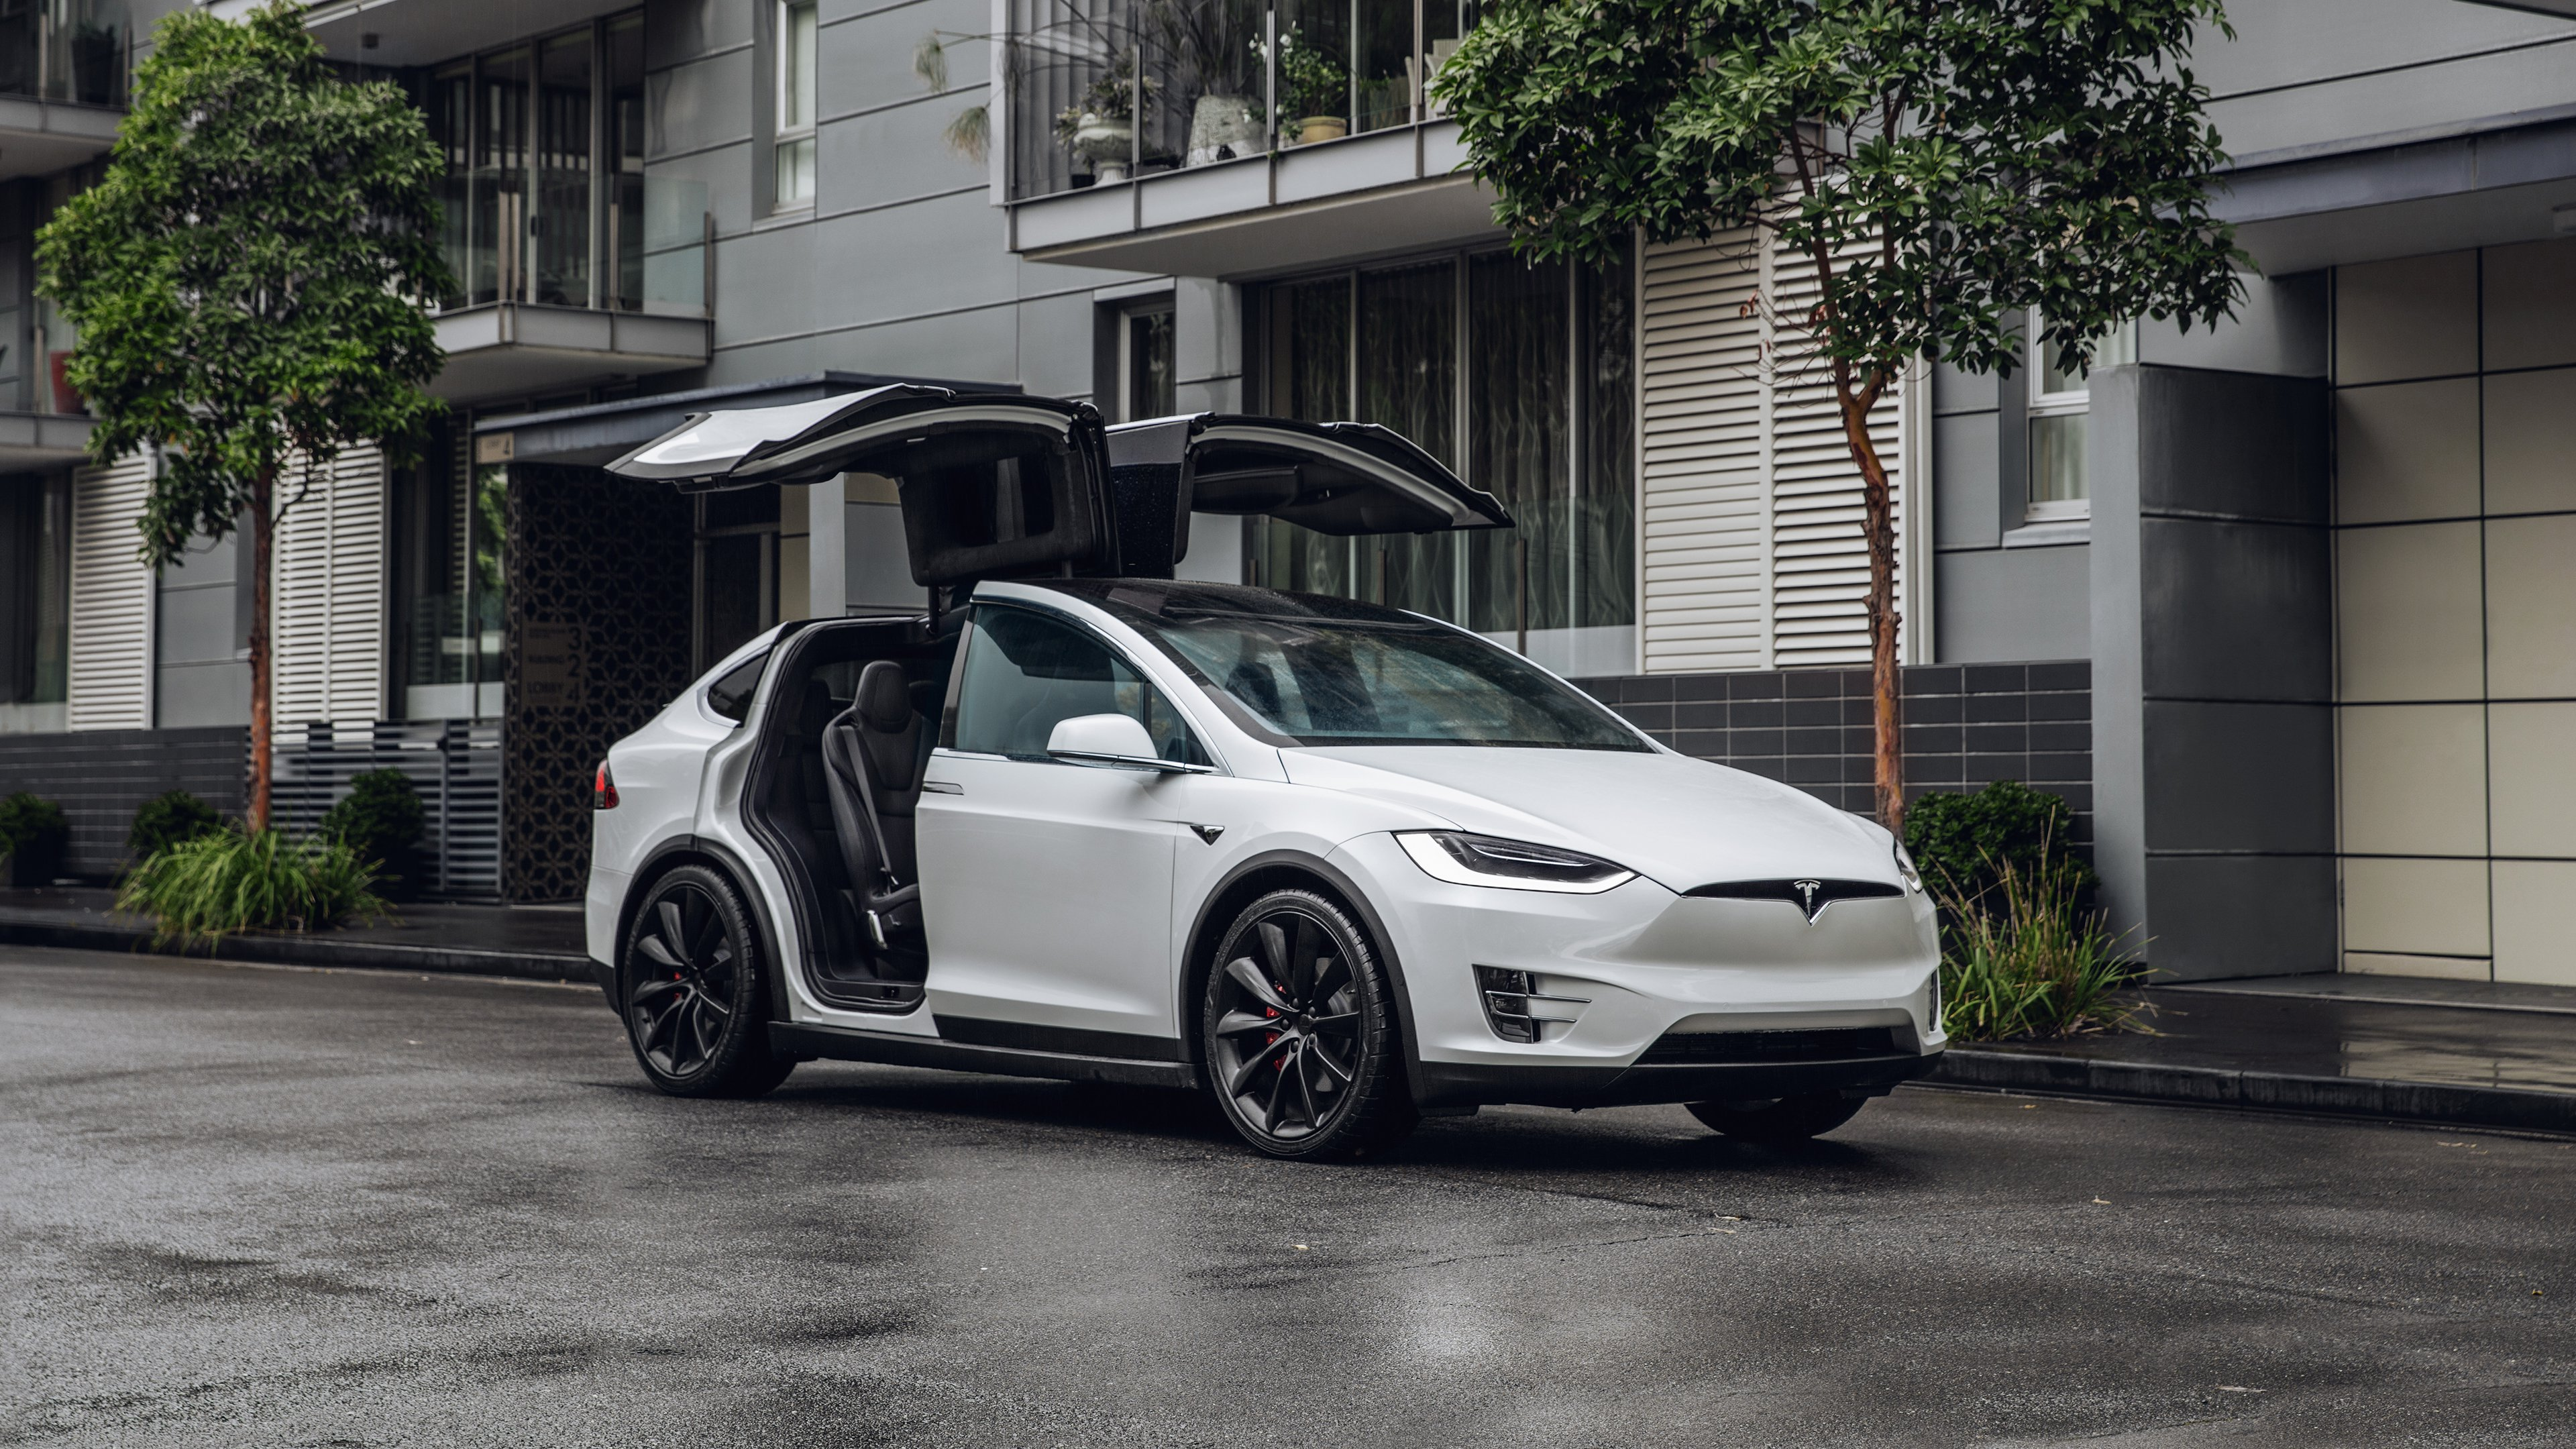 Tesla Model X: Latest News, Reviews, Specifications, Prices